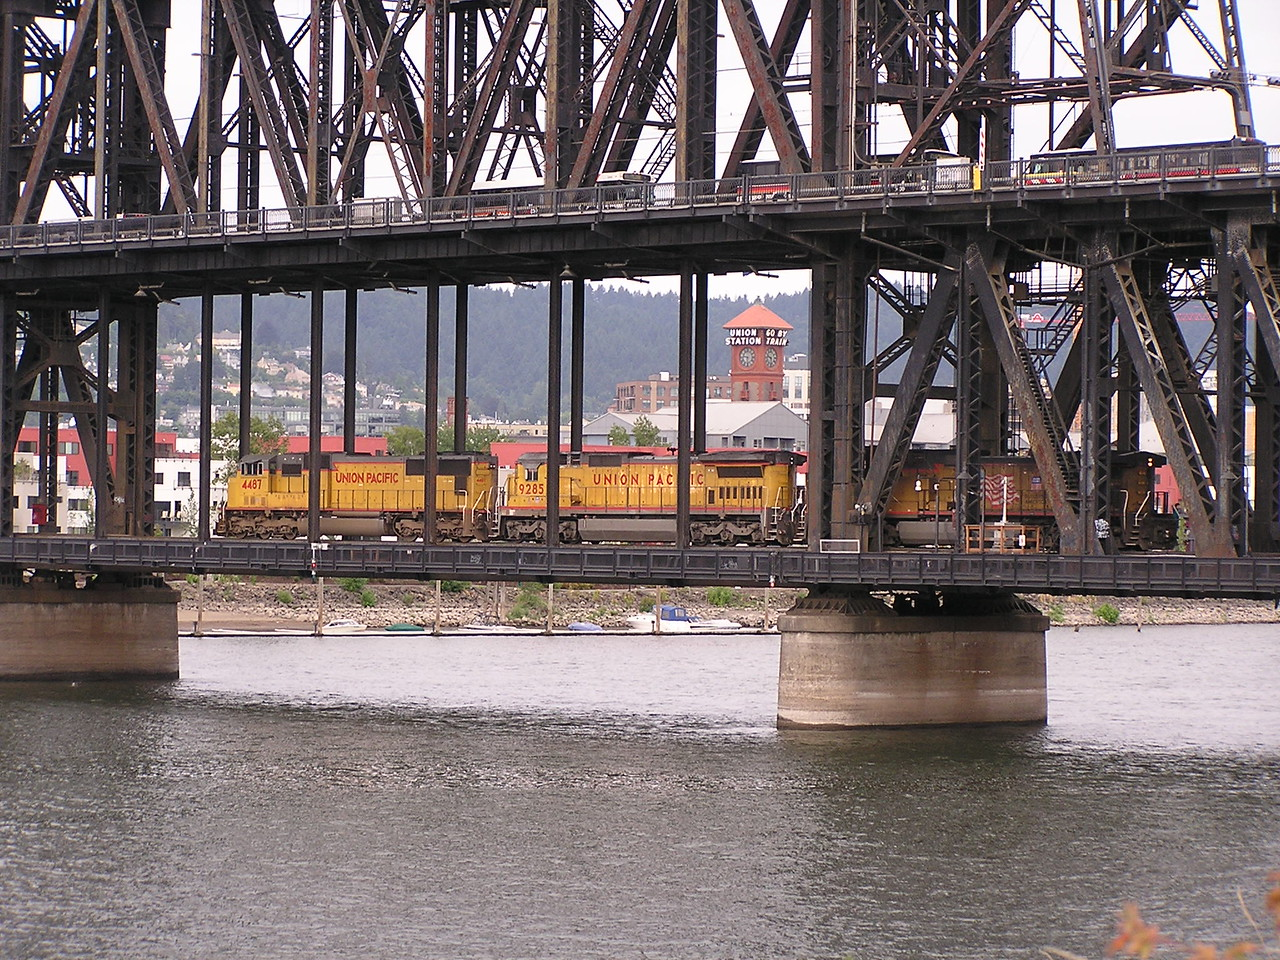 Nathan is interested in trains and we saw lots of them ... including this one on the lower level of the Steel Bridge.  Less easily seen is the commuter light-rail train on the upper level.